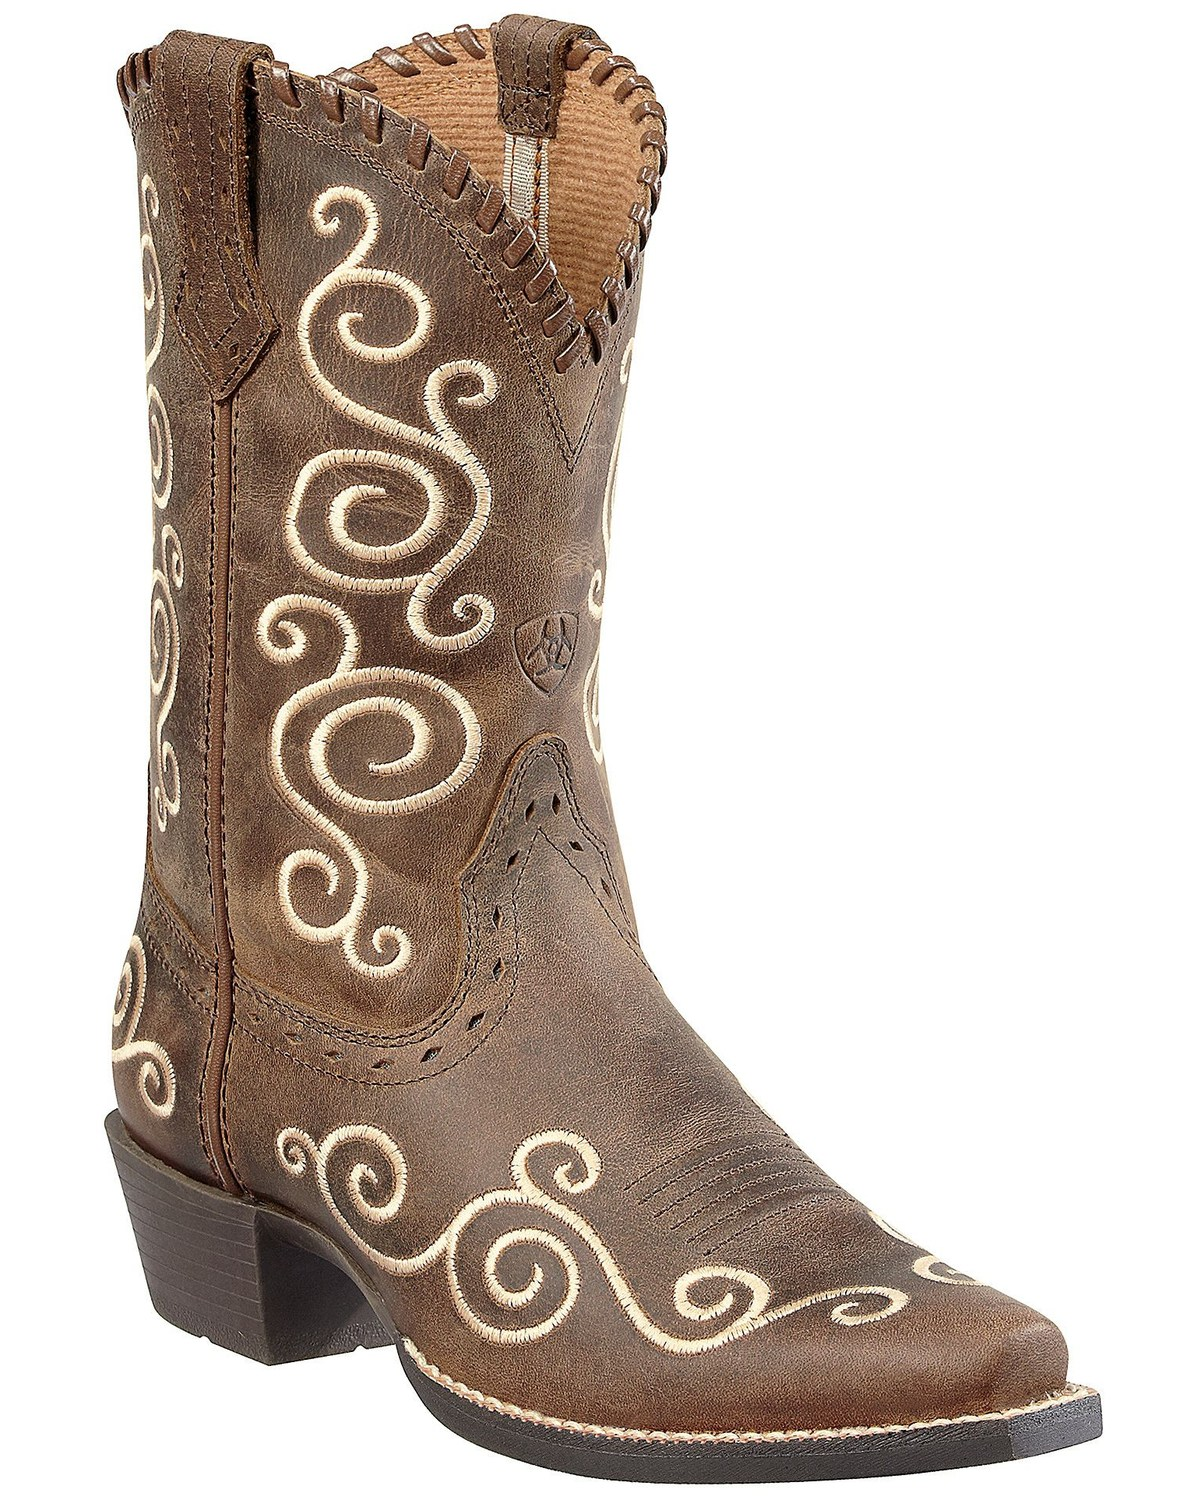 59c2350b0 Ariat Youth Girls  Shelleen Cowgirl Boots - Snip Toe